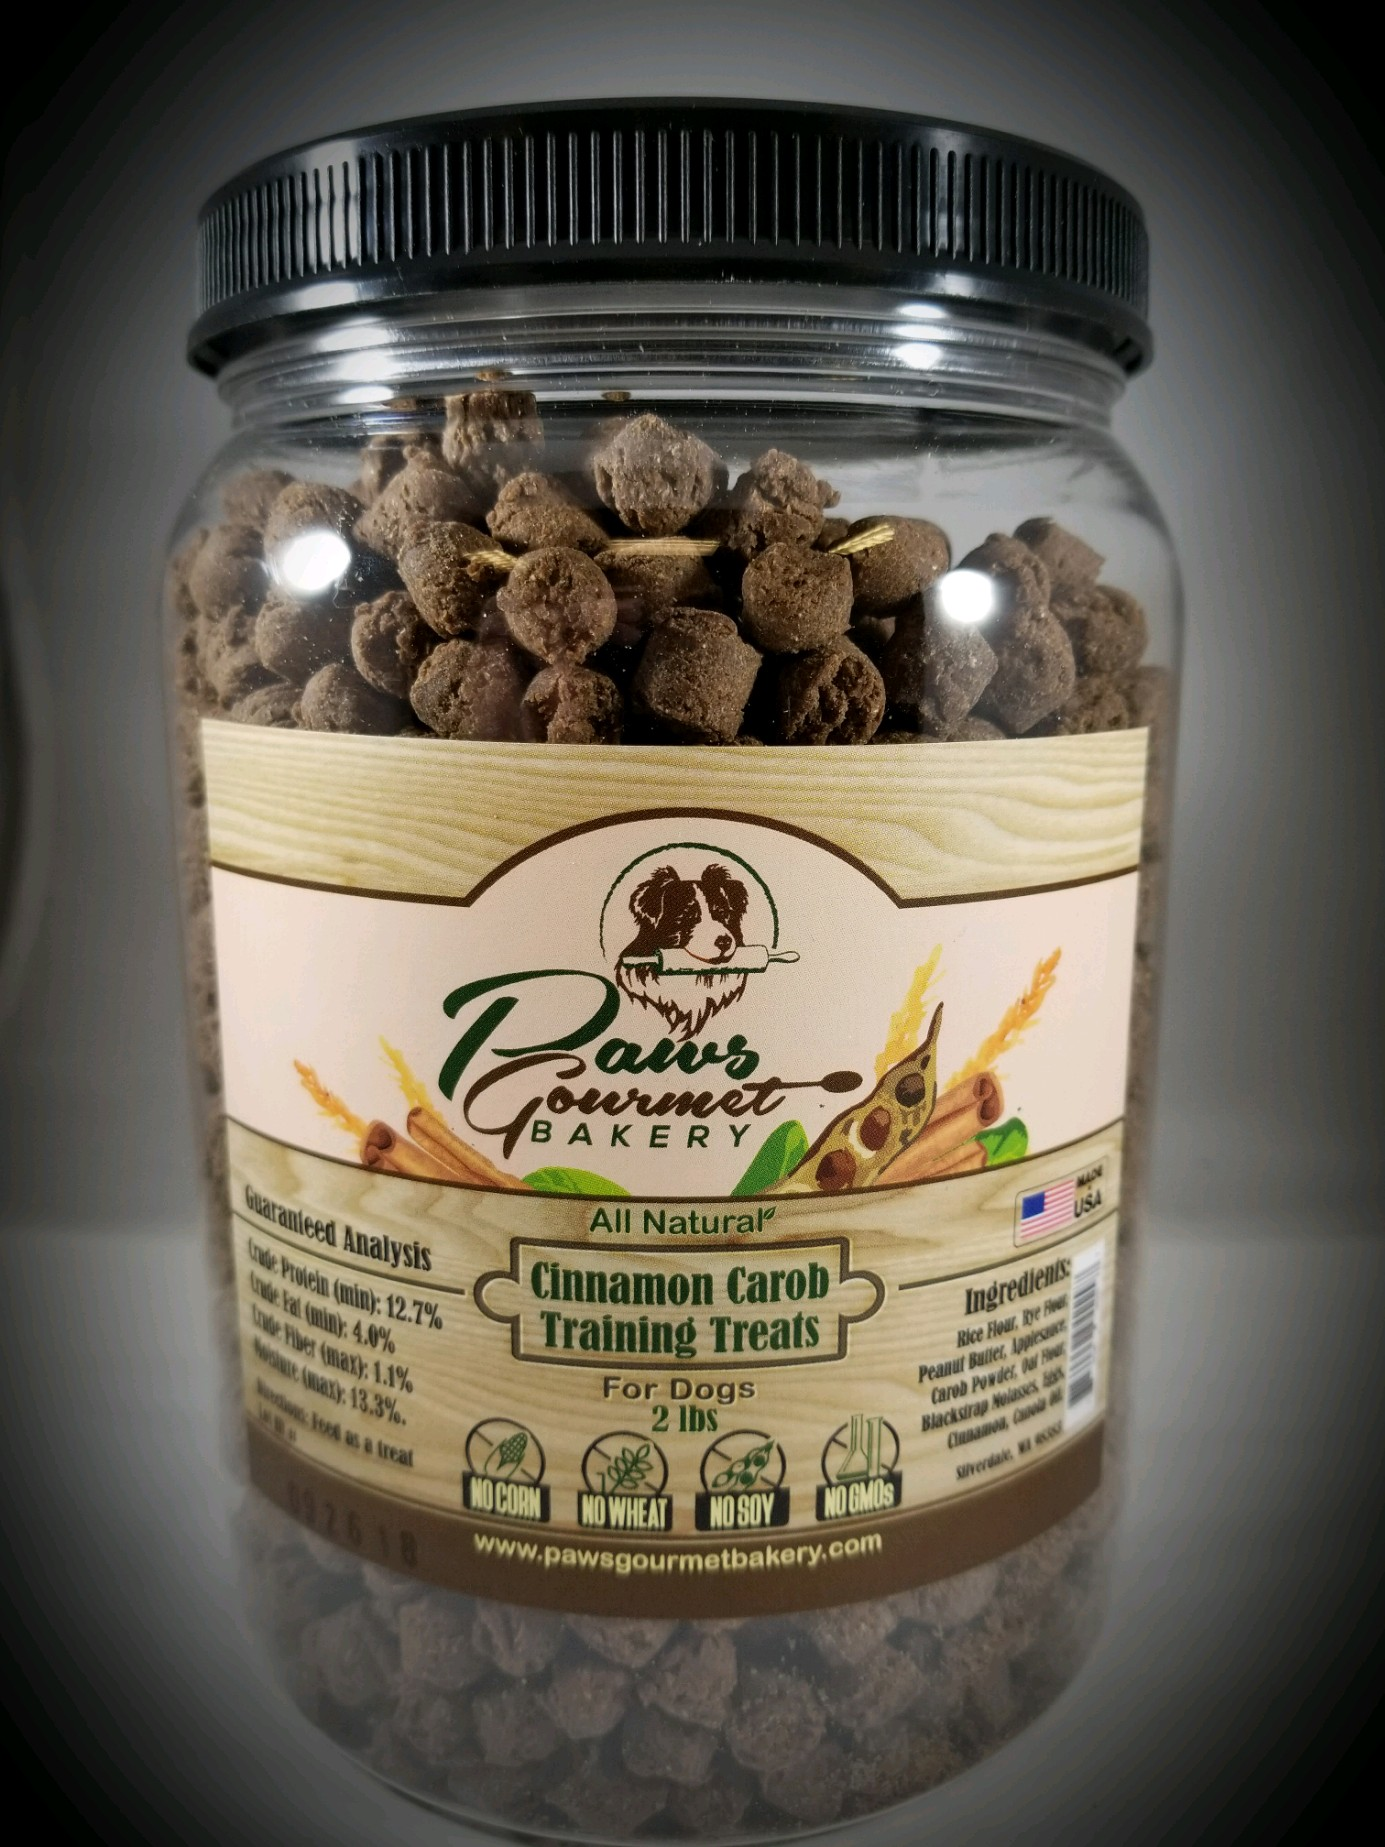 Cinnamon Carob Training Treats 2 lbs